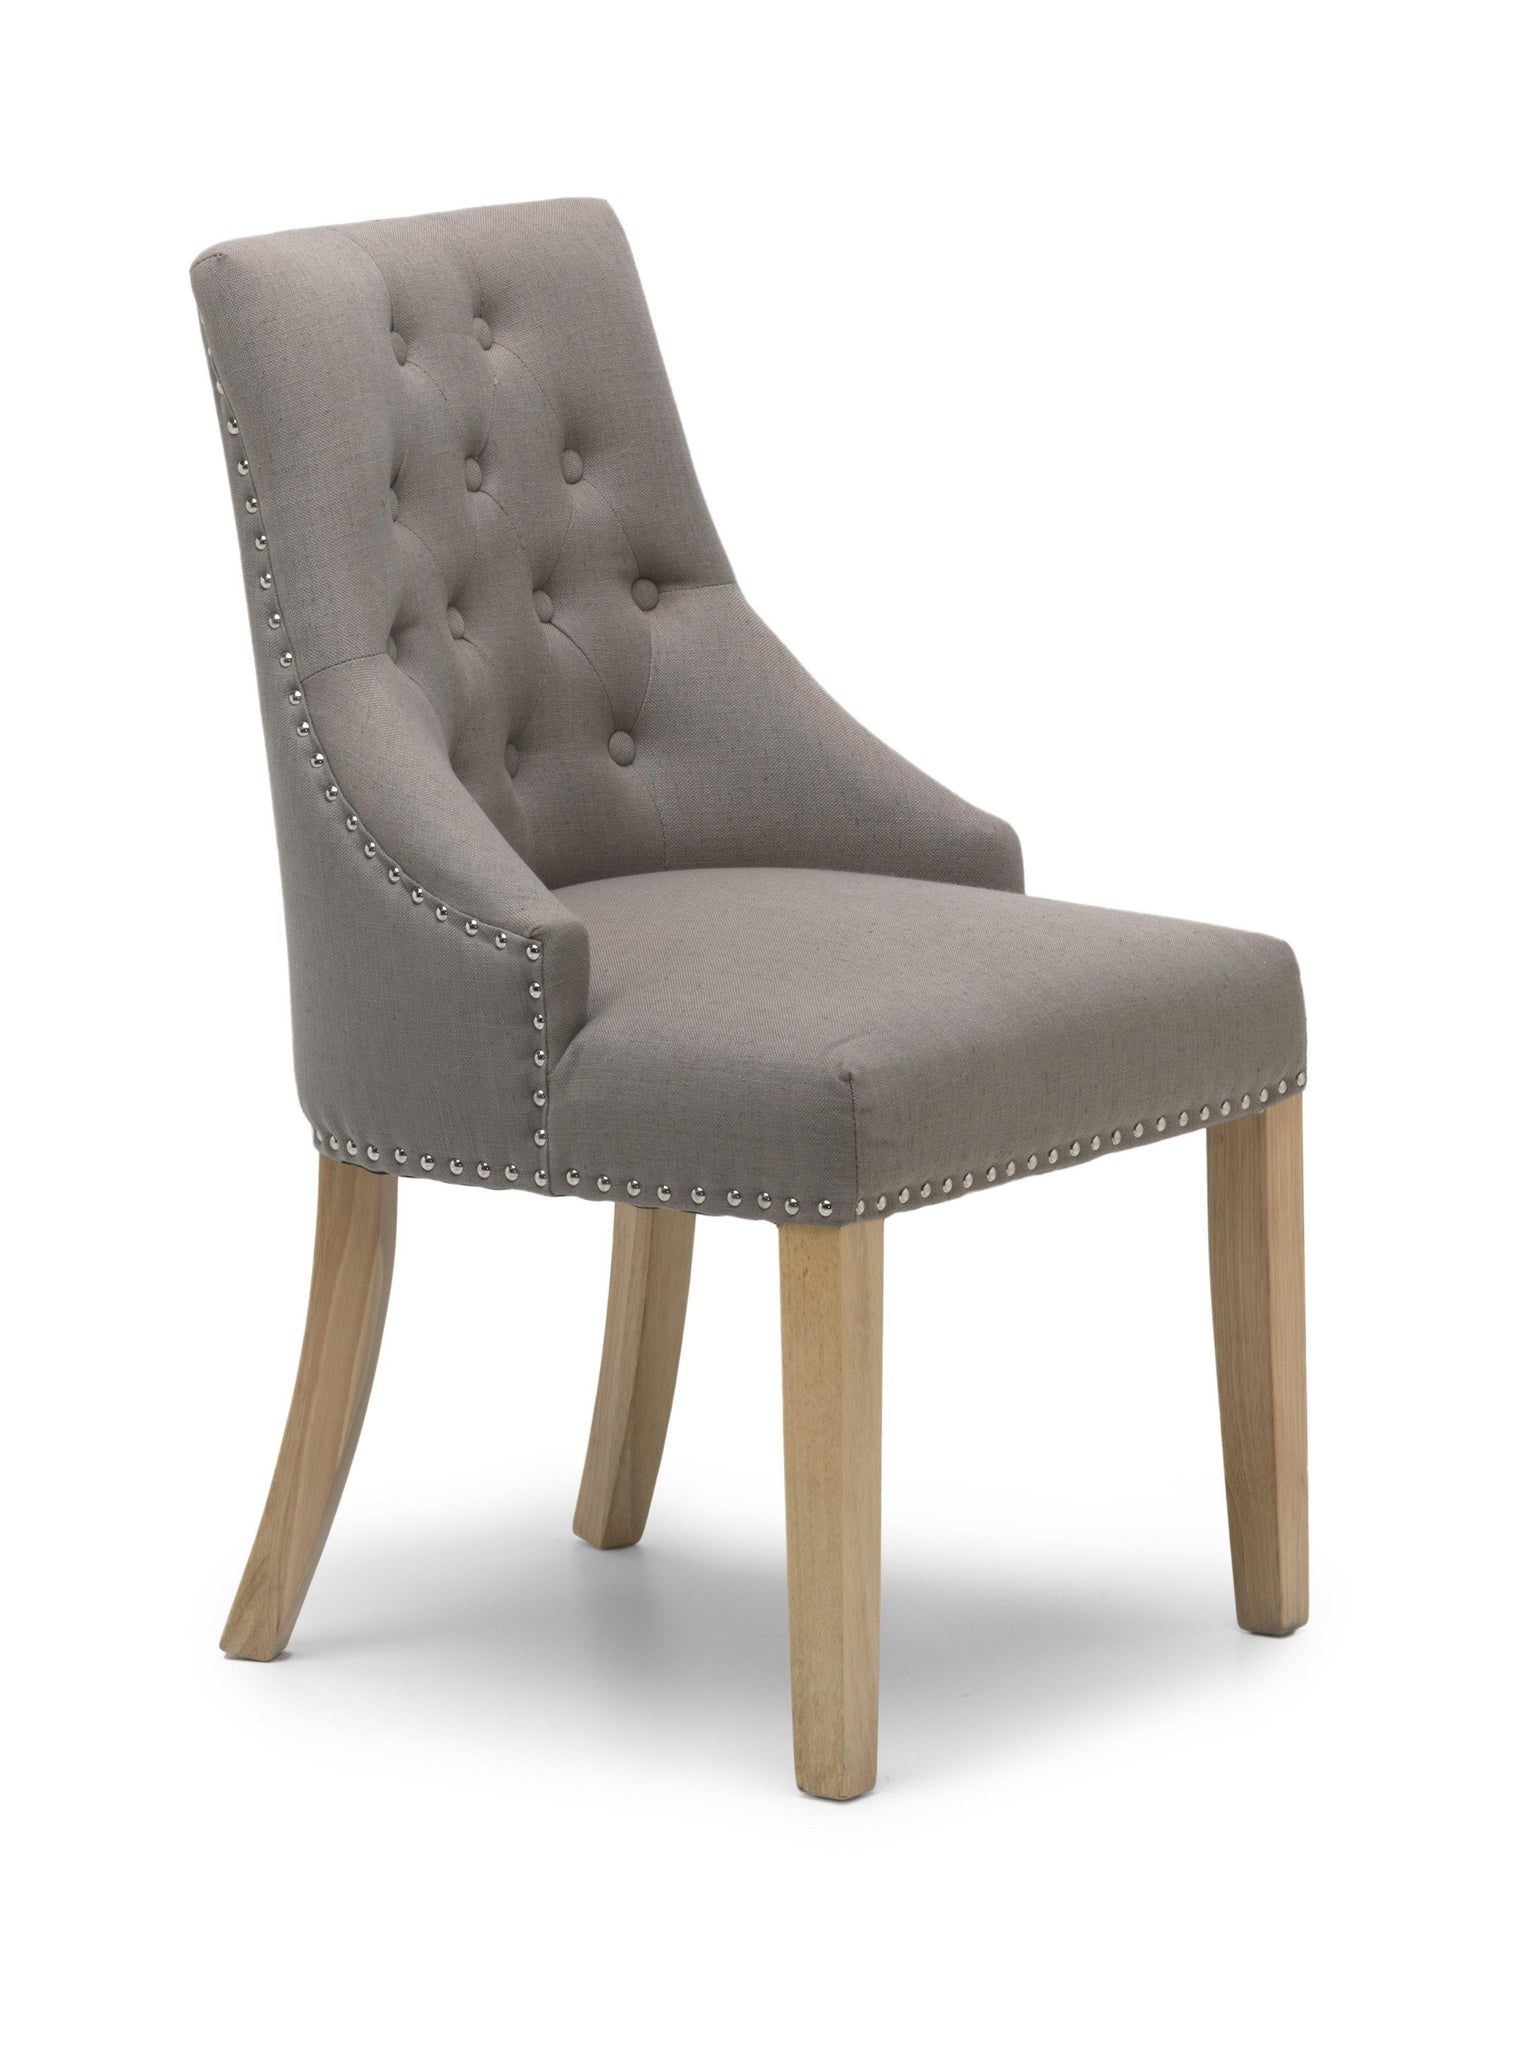 Camberwell Fawn Linen Style Accent Chair-fabric accent chair-shankar-GoFurn Furniture Store Kent